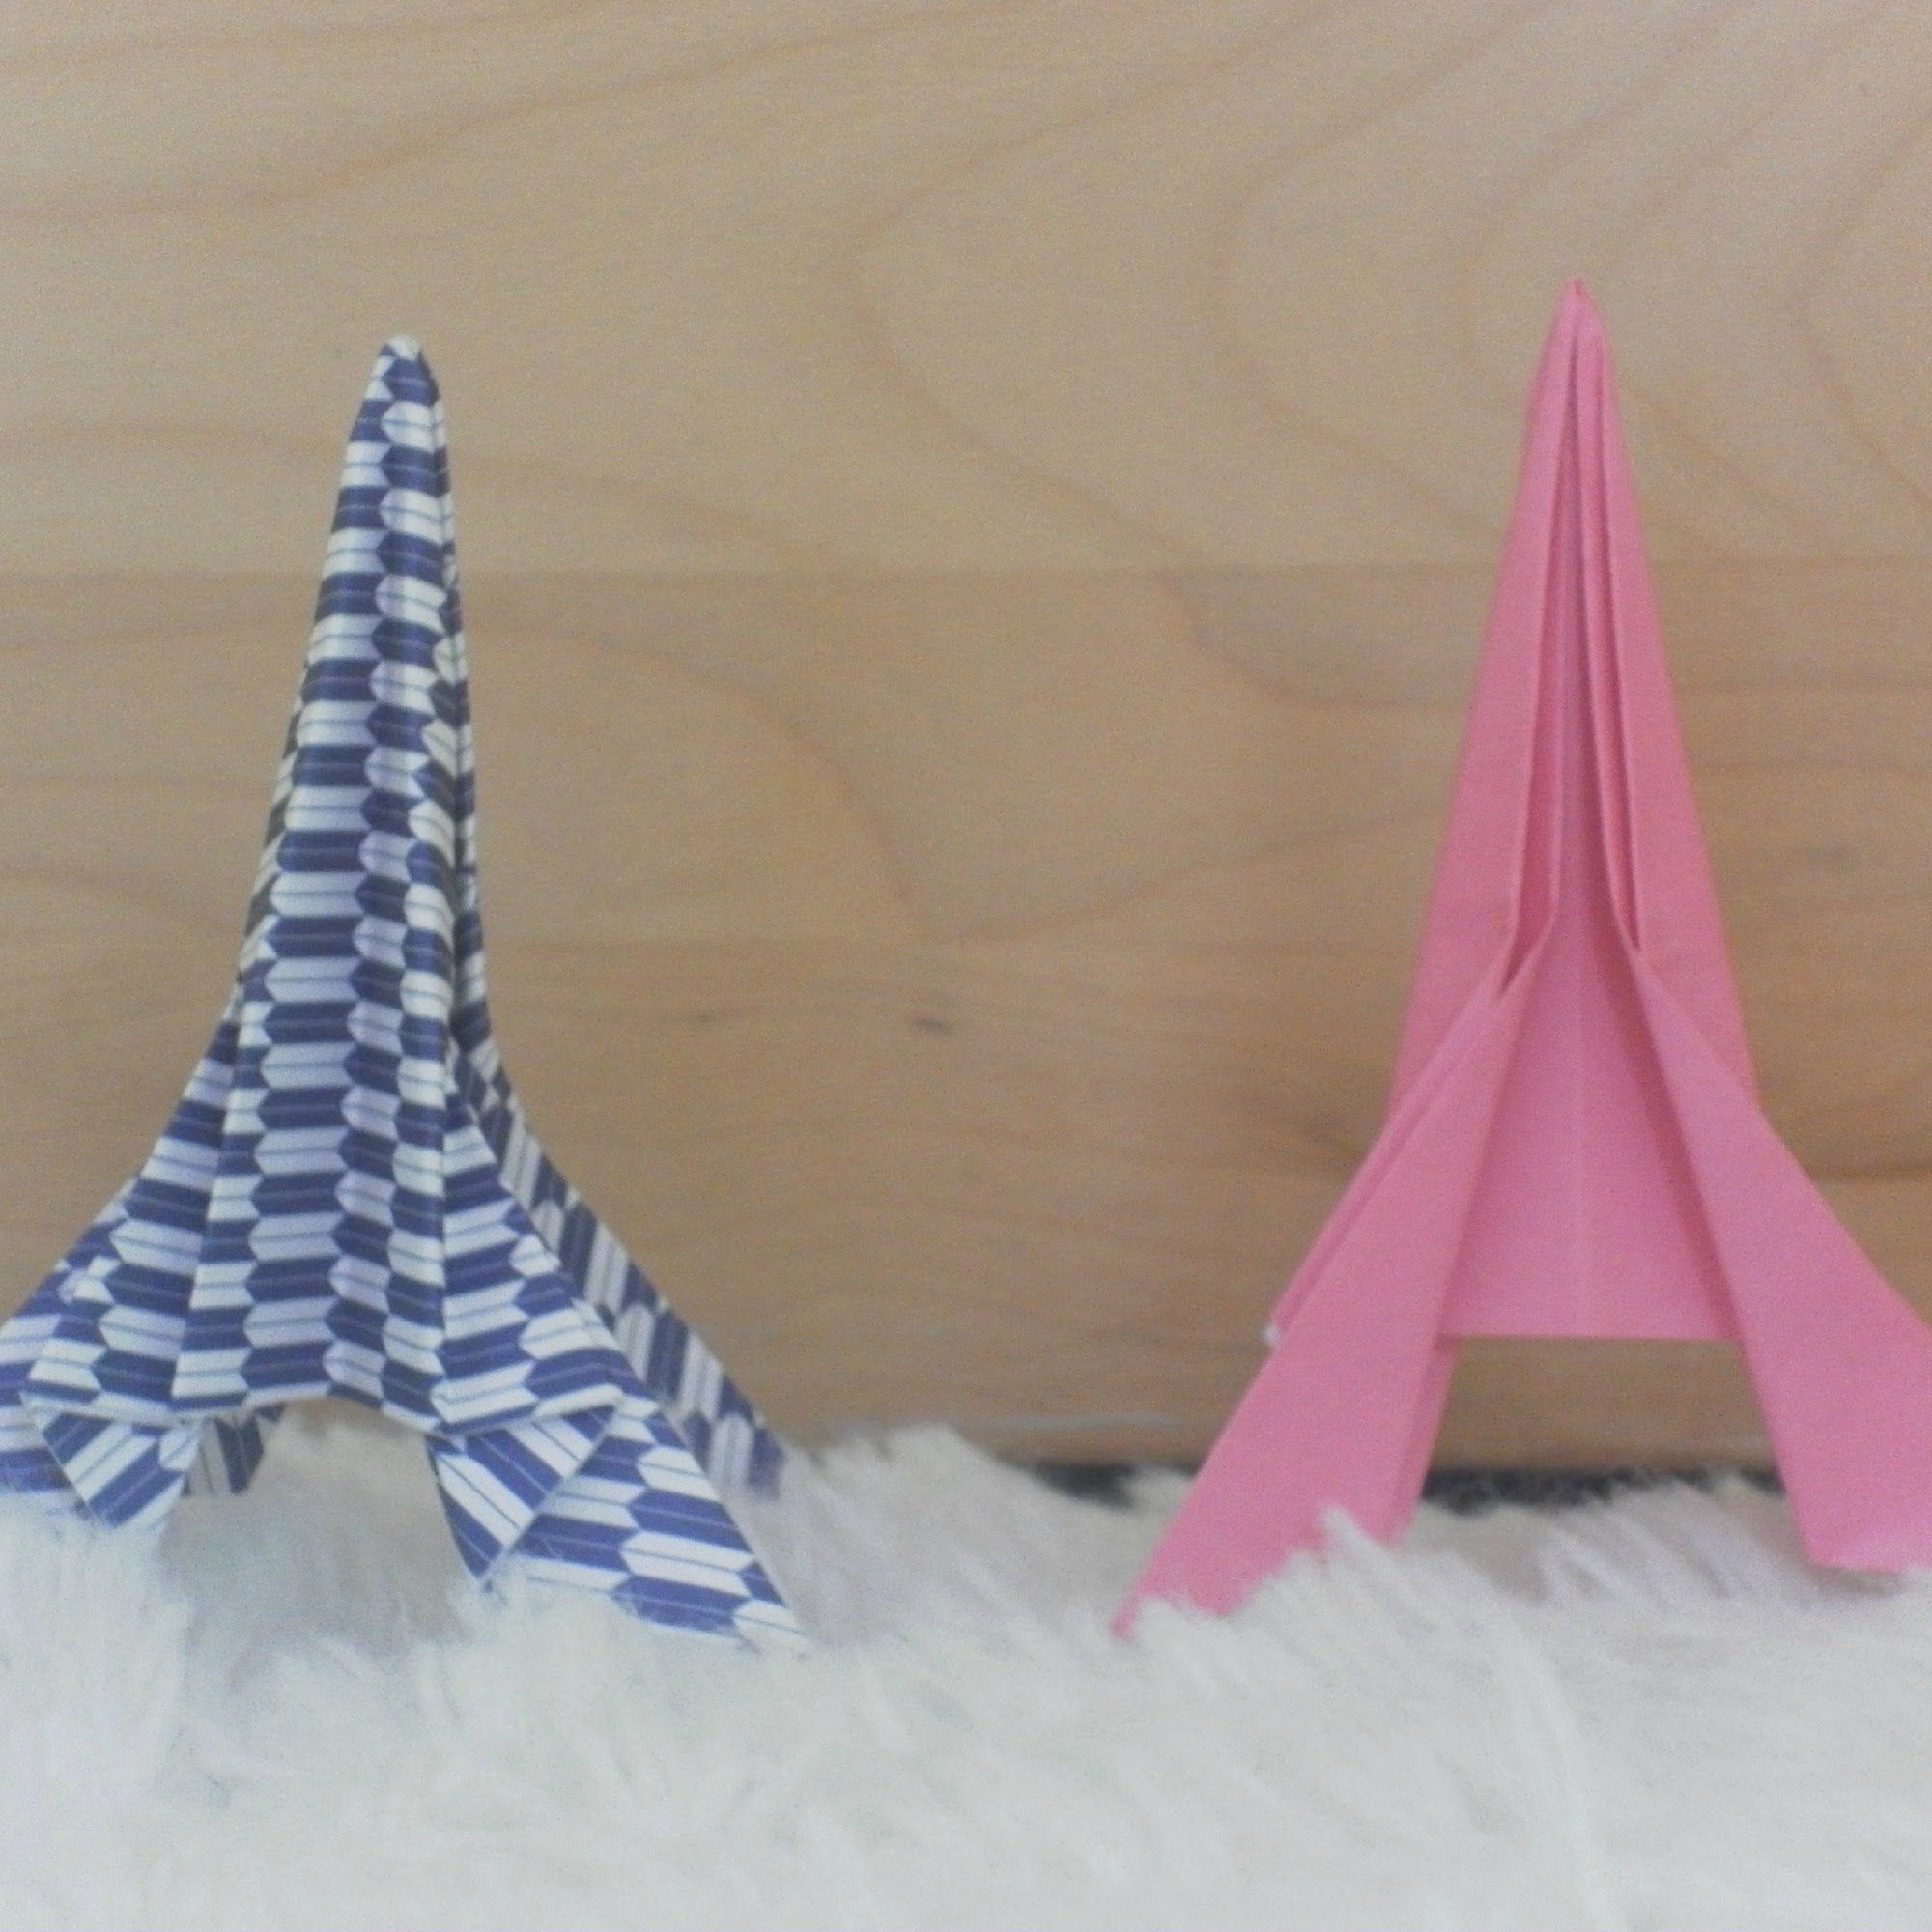 How to fold an origami eiffel tower easy youtube origami how to fold an origami eiffel tower easy youtube jeuxipadfo Choice Image